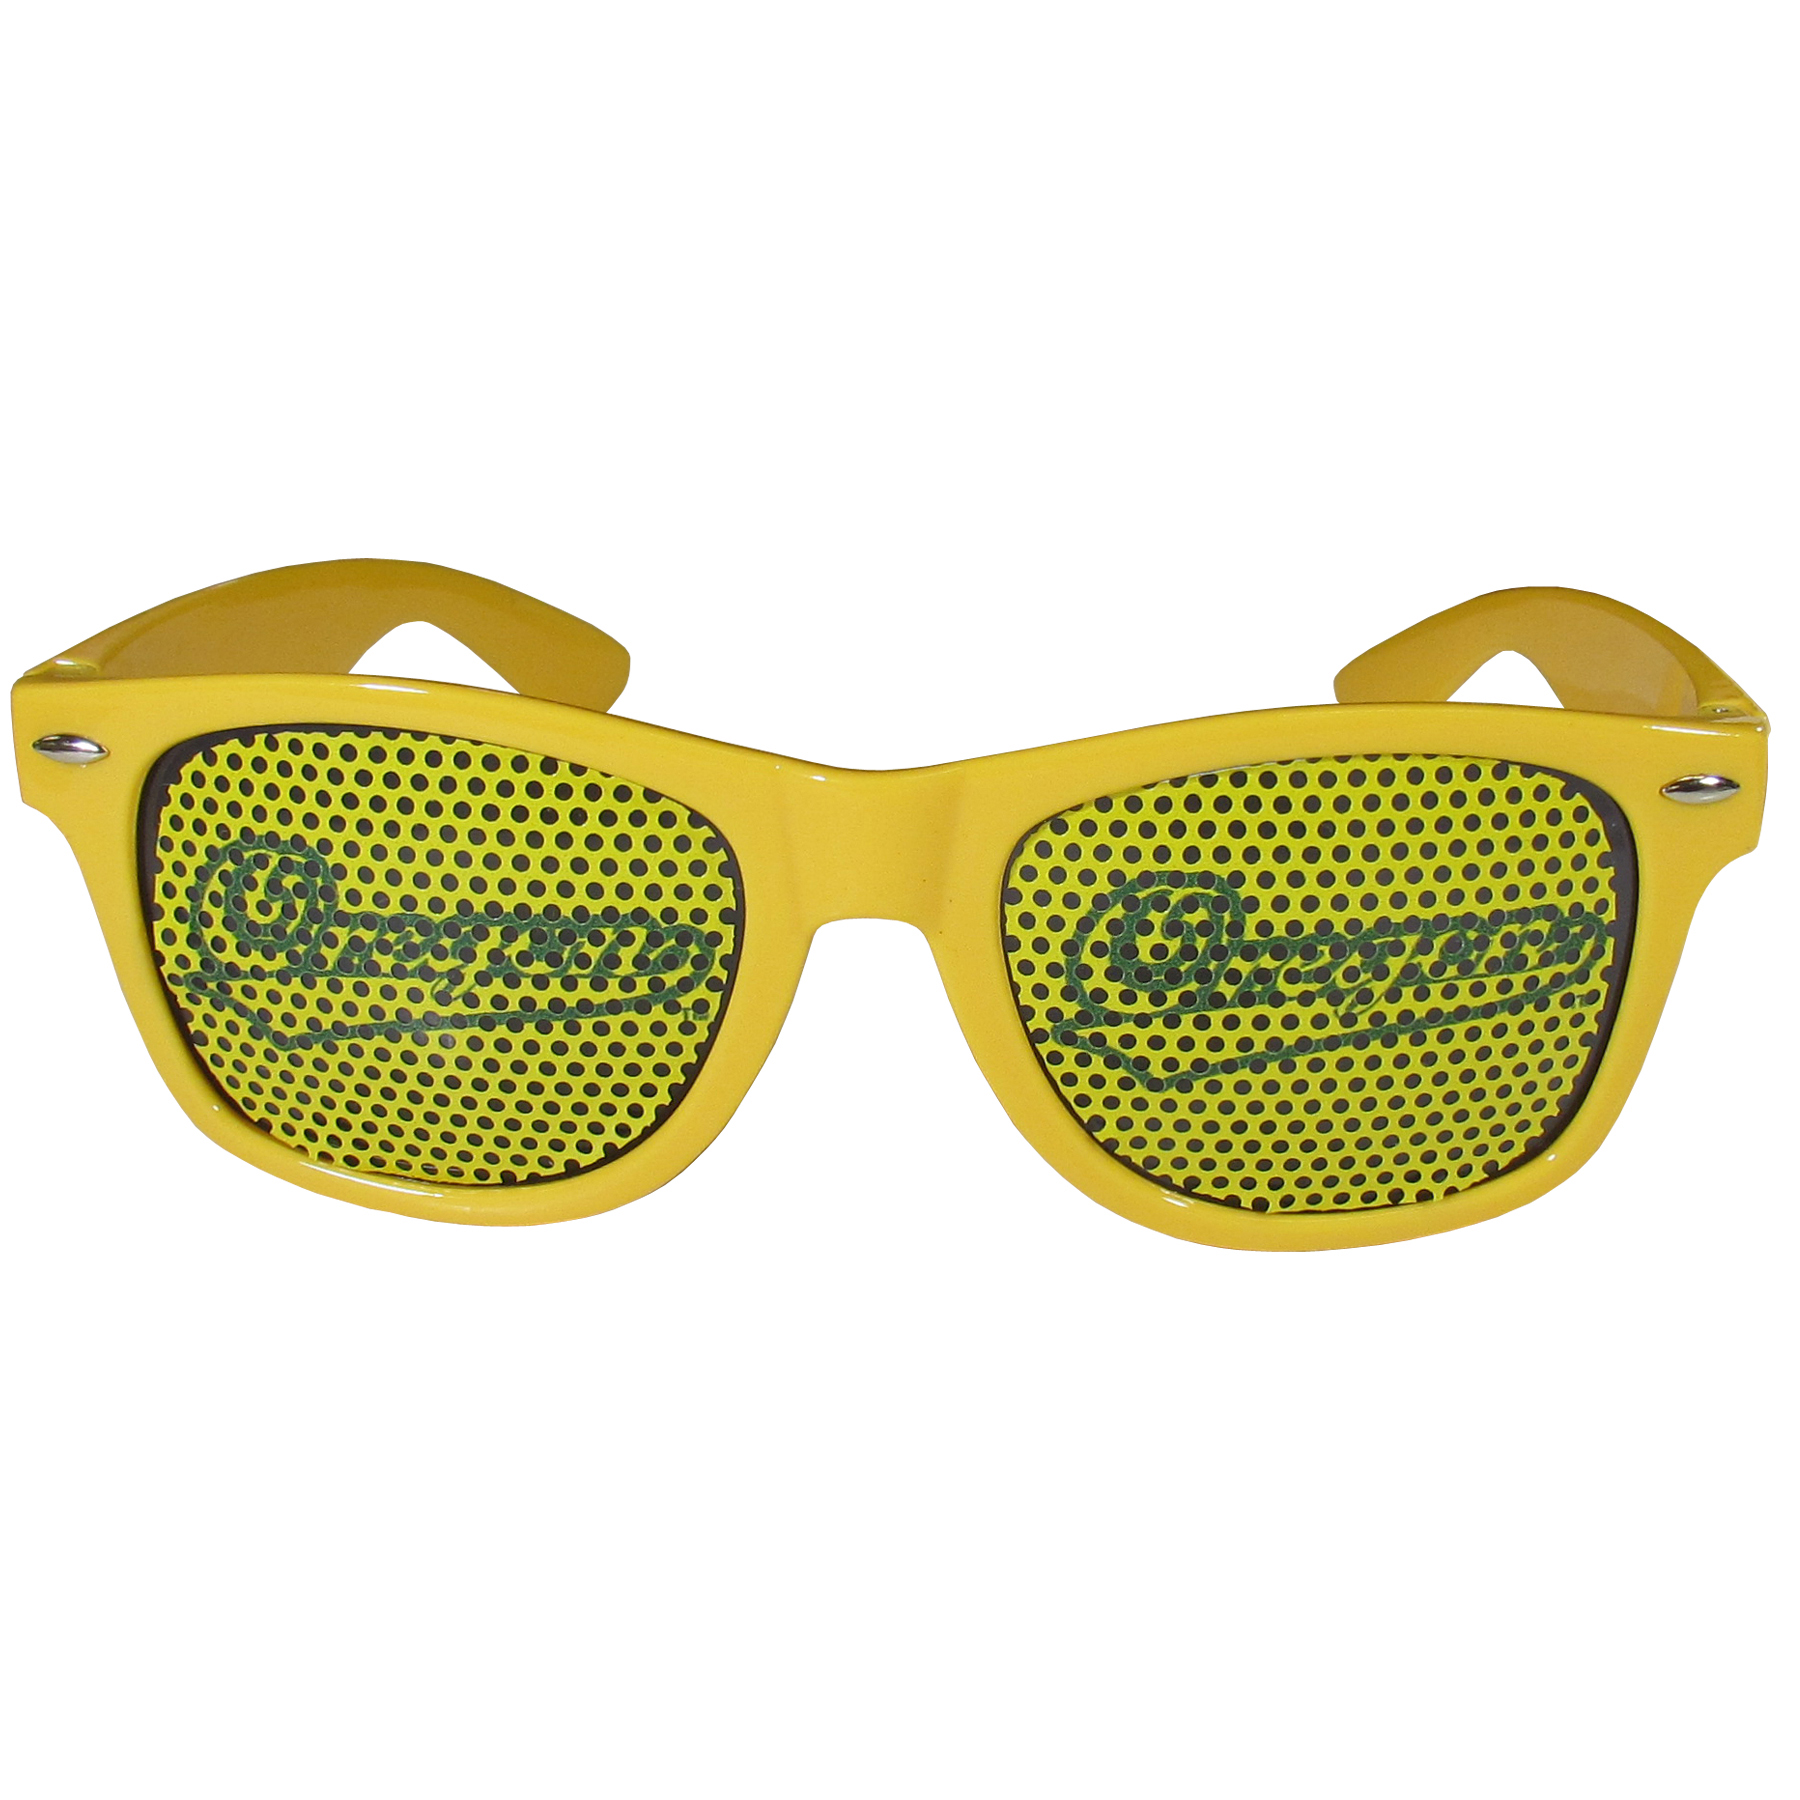 Oregon Ducks Game Day Shades - Our officially licensed game day shades are the perfect accessory for the devoted Oregon Ducks fan! The sunglasses have durable polycarbonate frames with flex hinges for comfort and damage resistance. The lenses feature brightly colored team clings that are perforated for visibility.